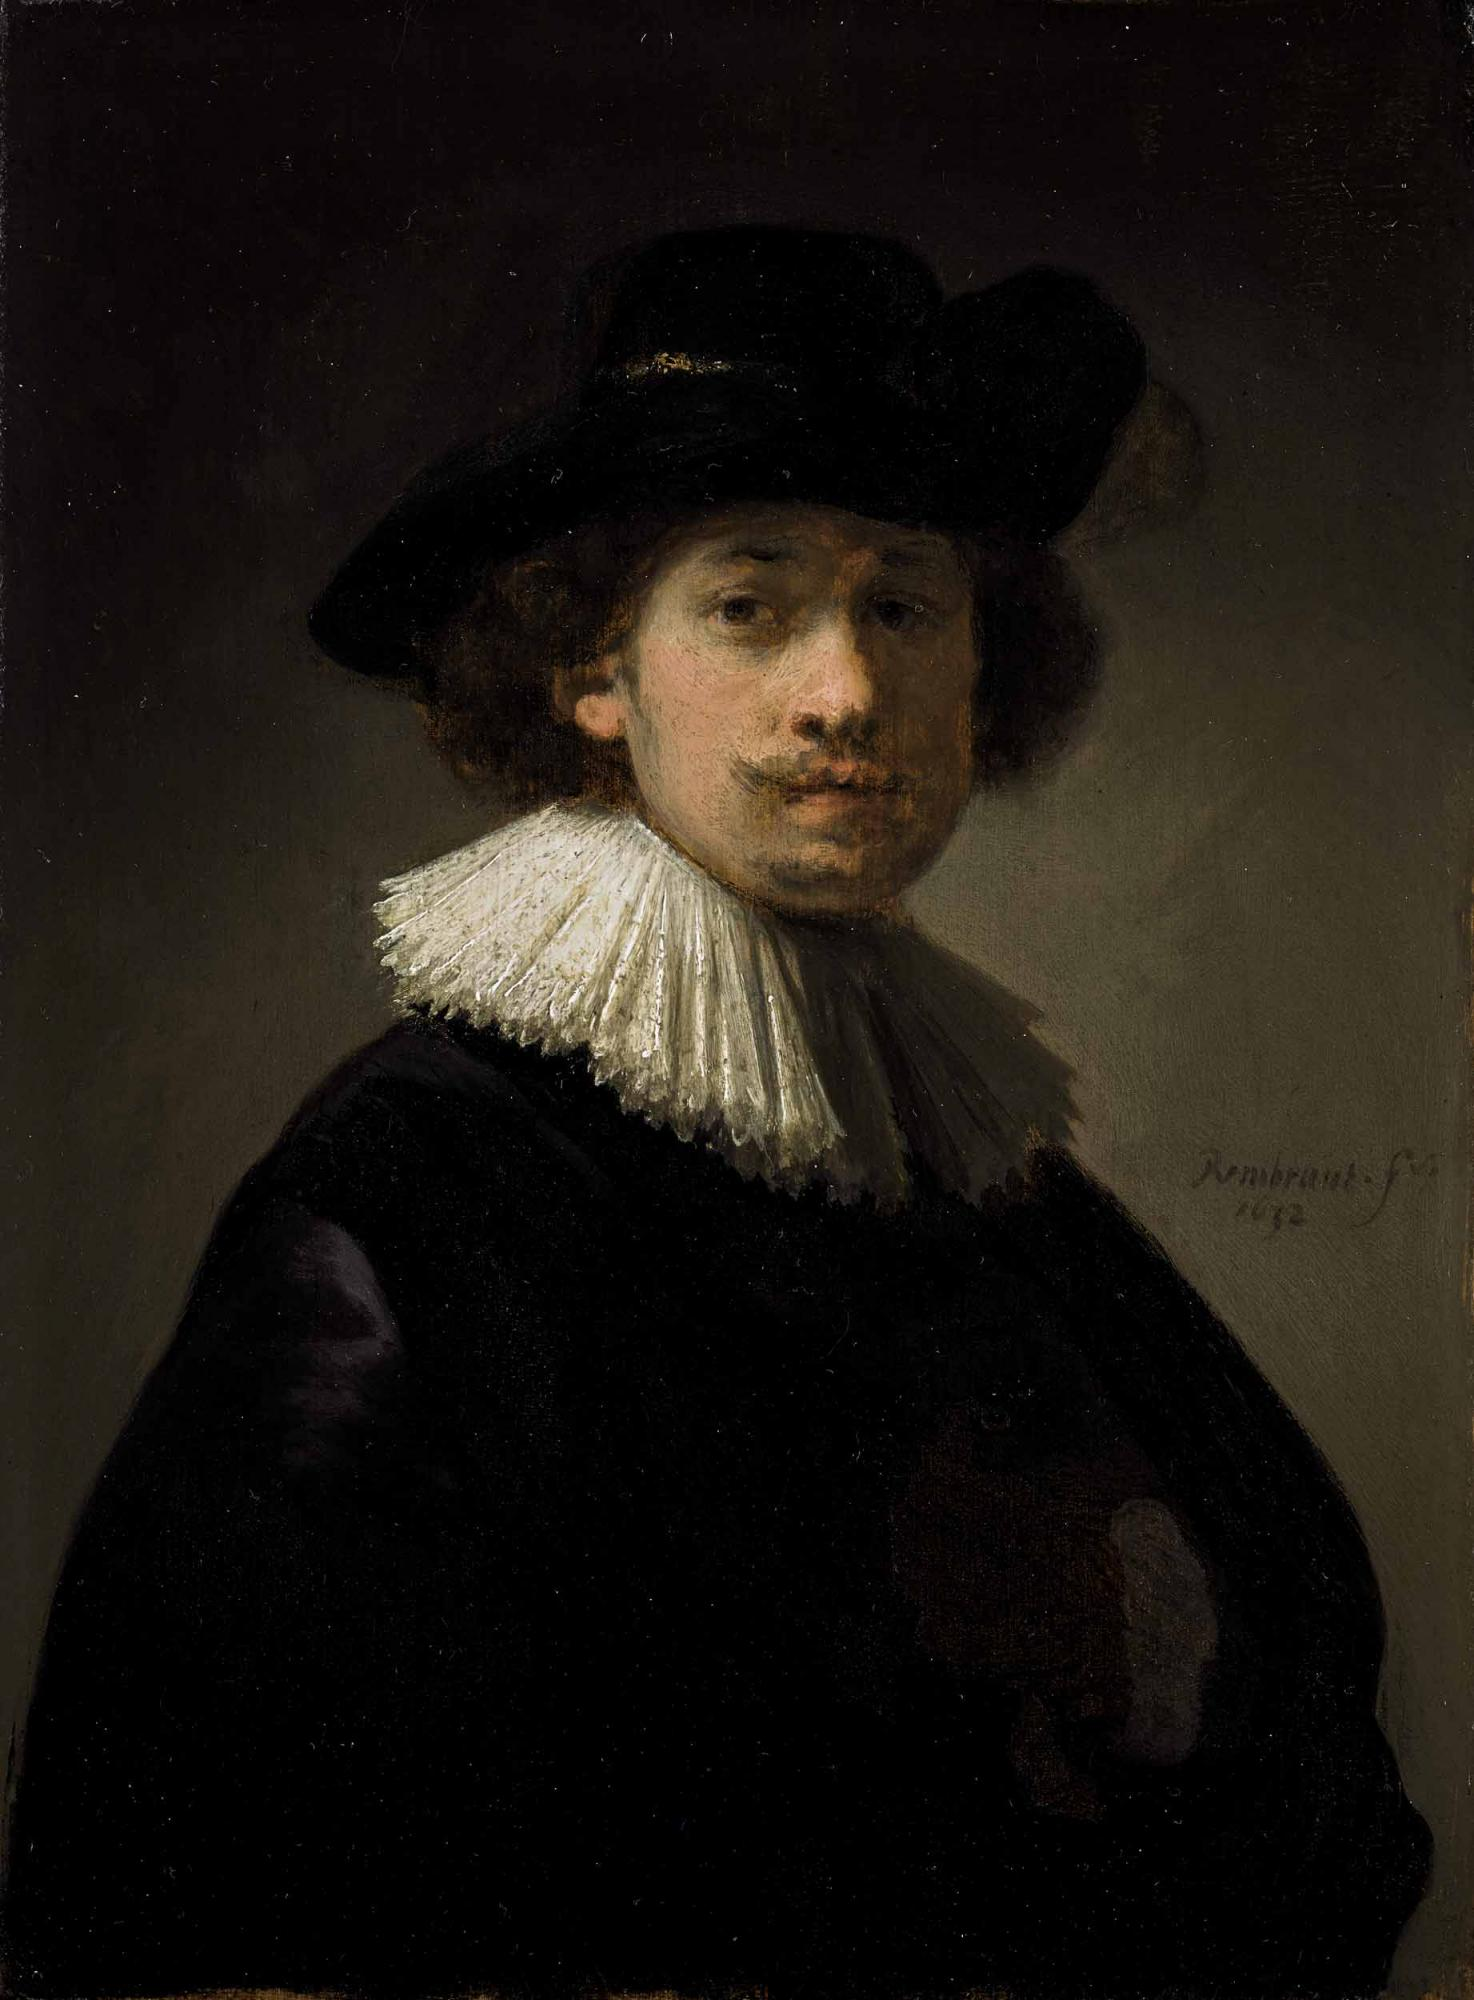 v-Lot-12-Rembrandt-Van-Rijn-Self-portrait-wearing-a-ruff-and-black-hat-1632-est.jpg